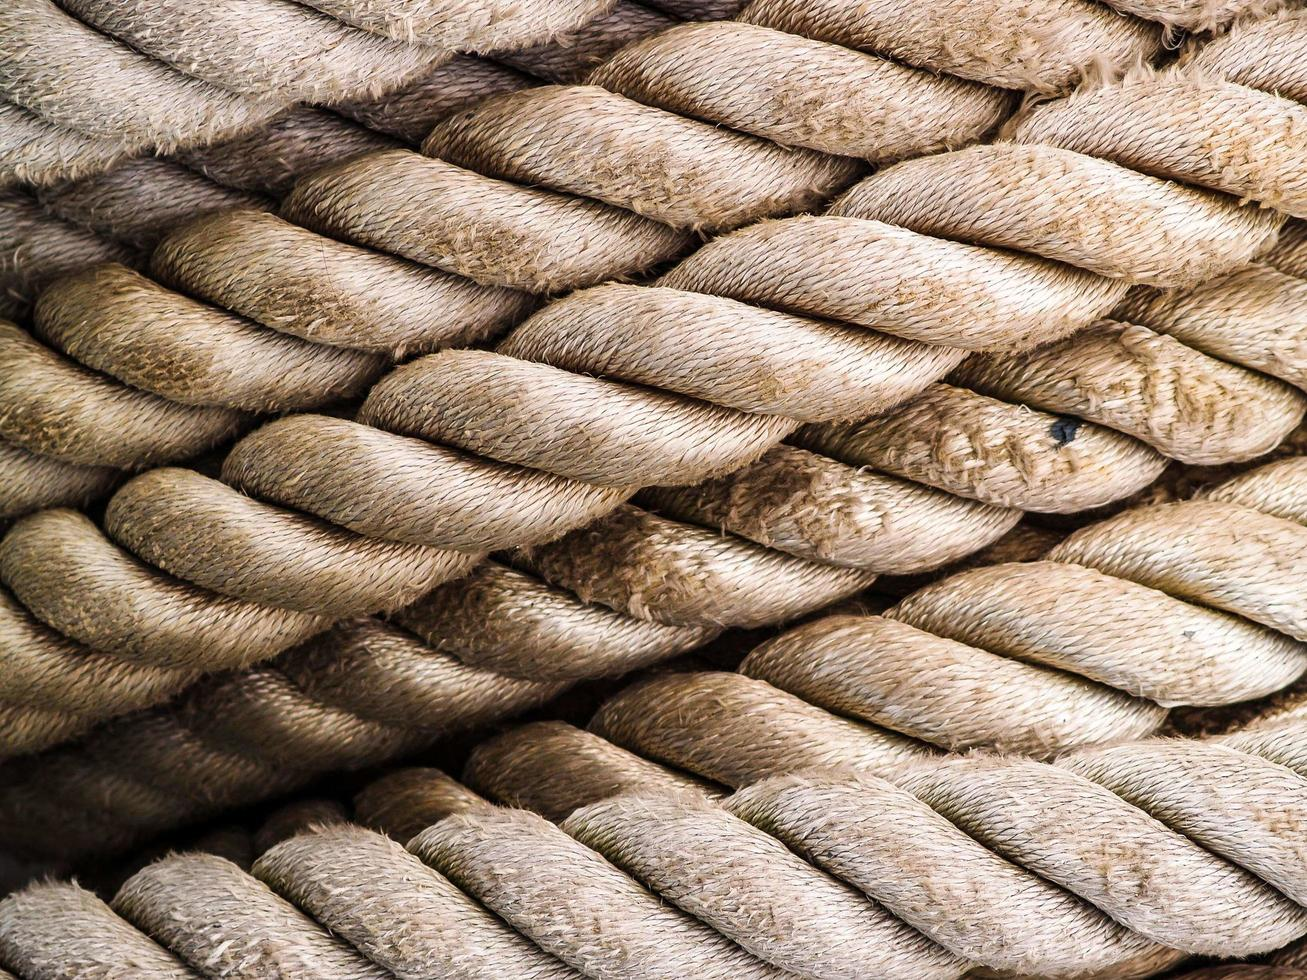 Light brown textured rope photo